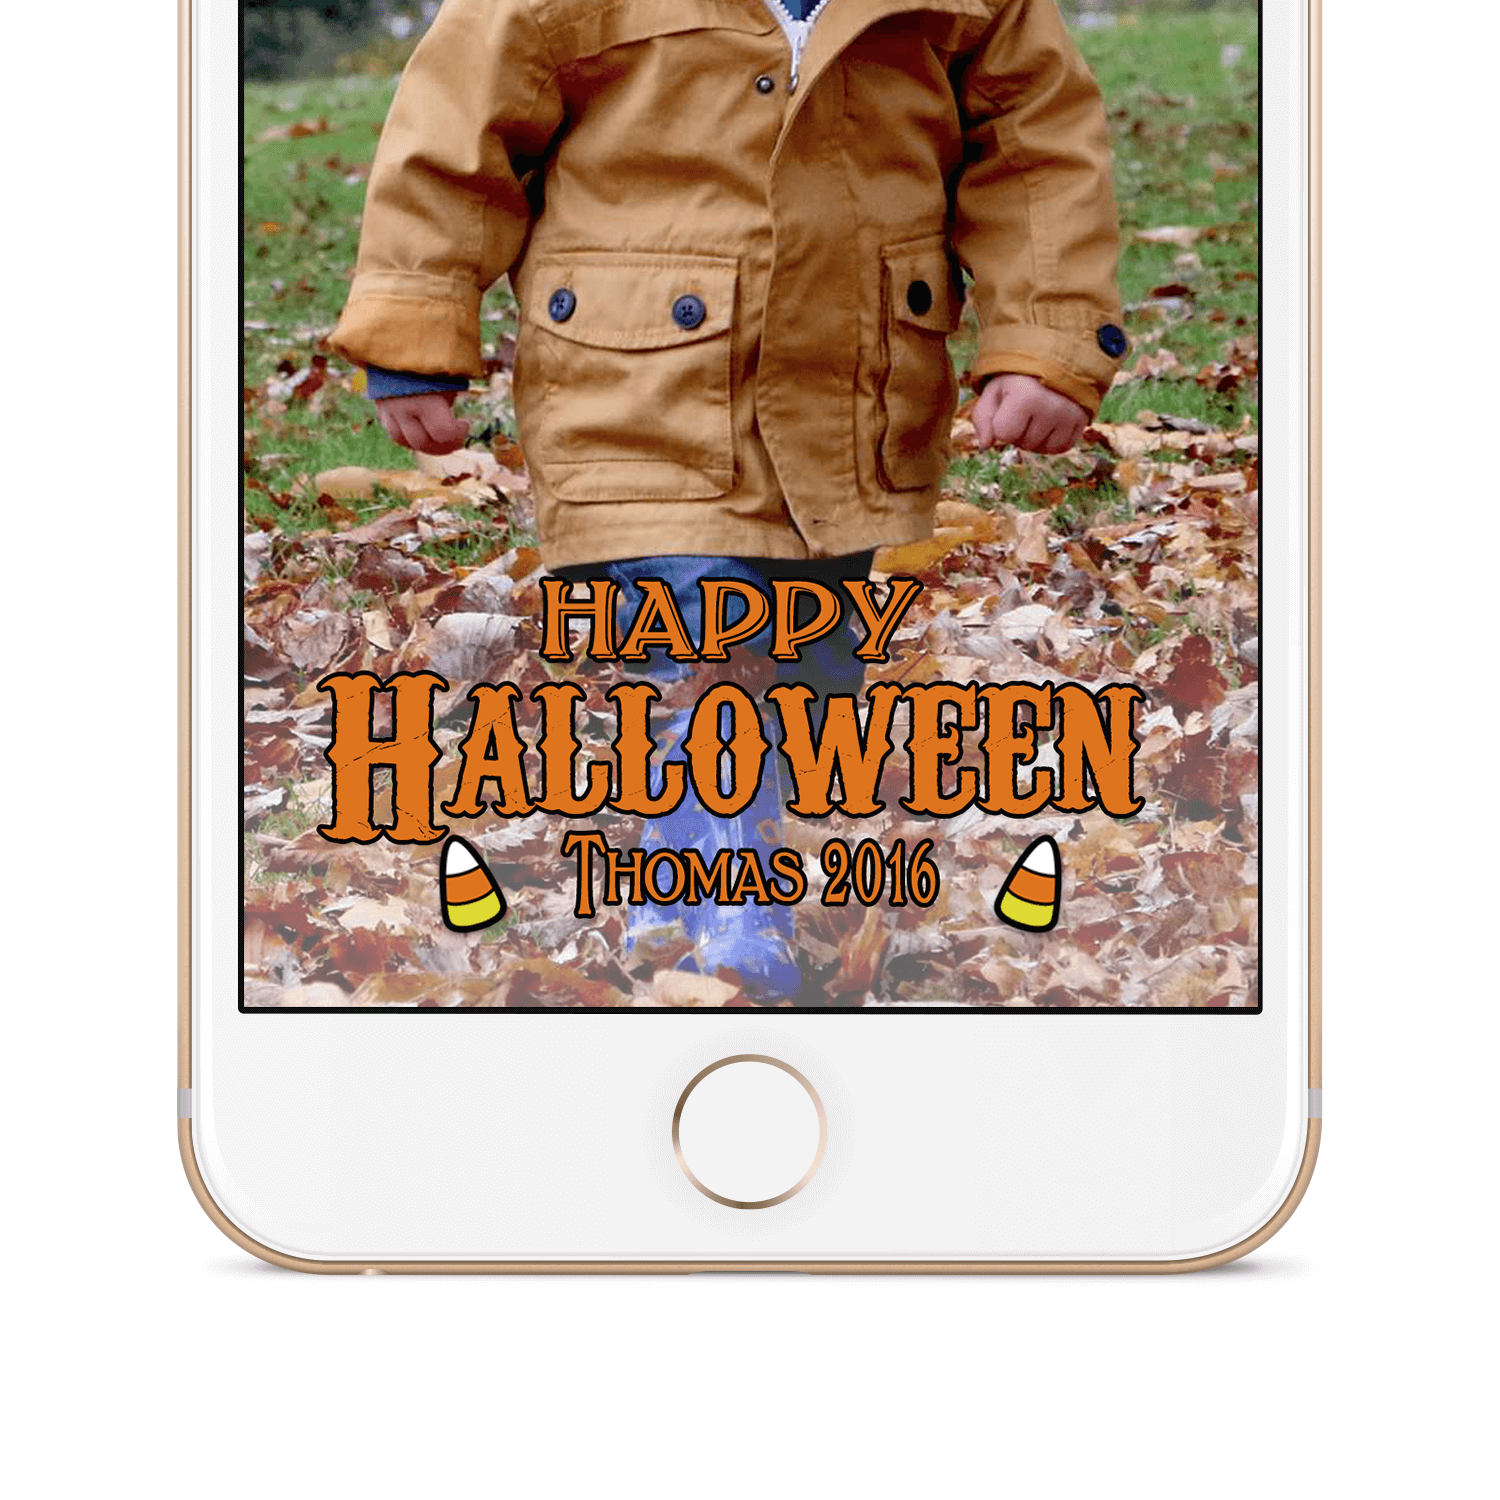 Snapchat Geofilter Secondary Image Halloween 4